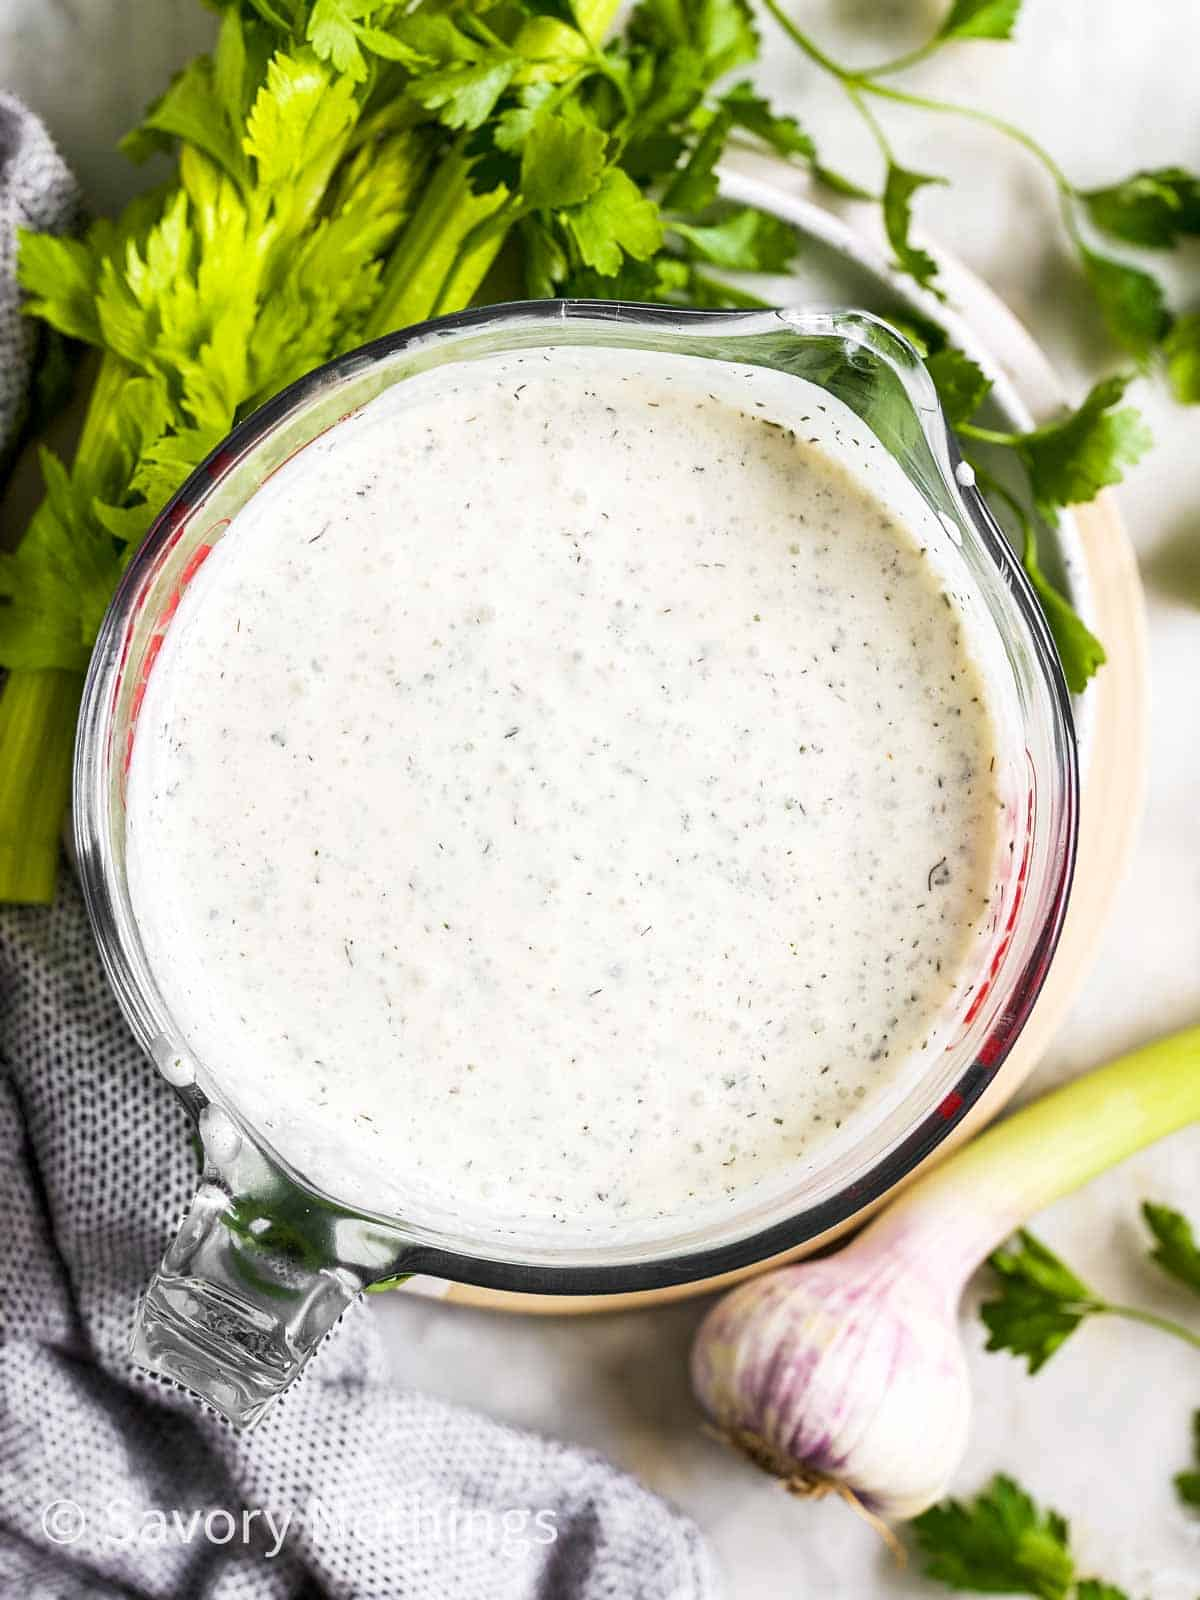 overhead view of ranch salad dressing in glass measuring jug on platter with fresh herbs and garlic